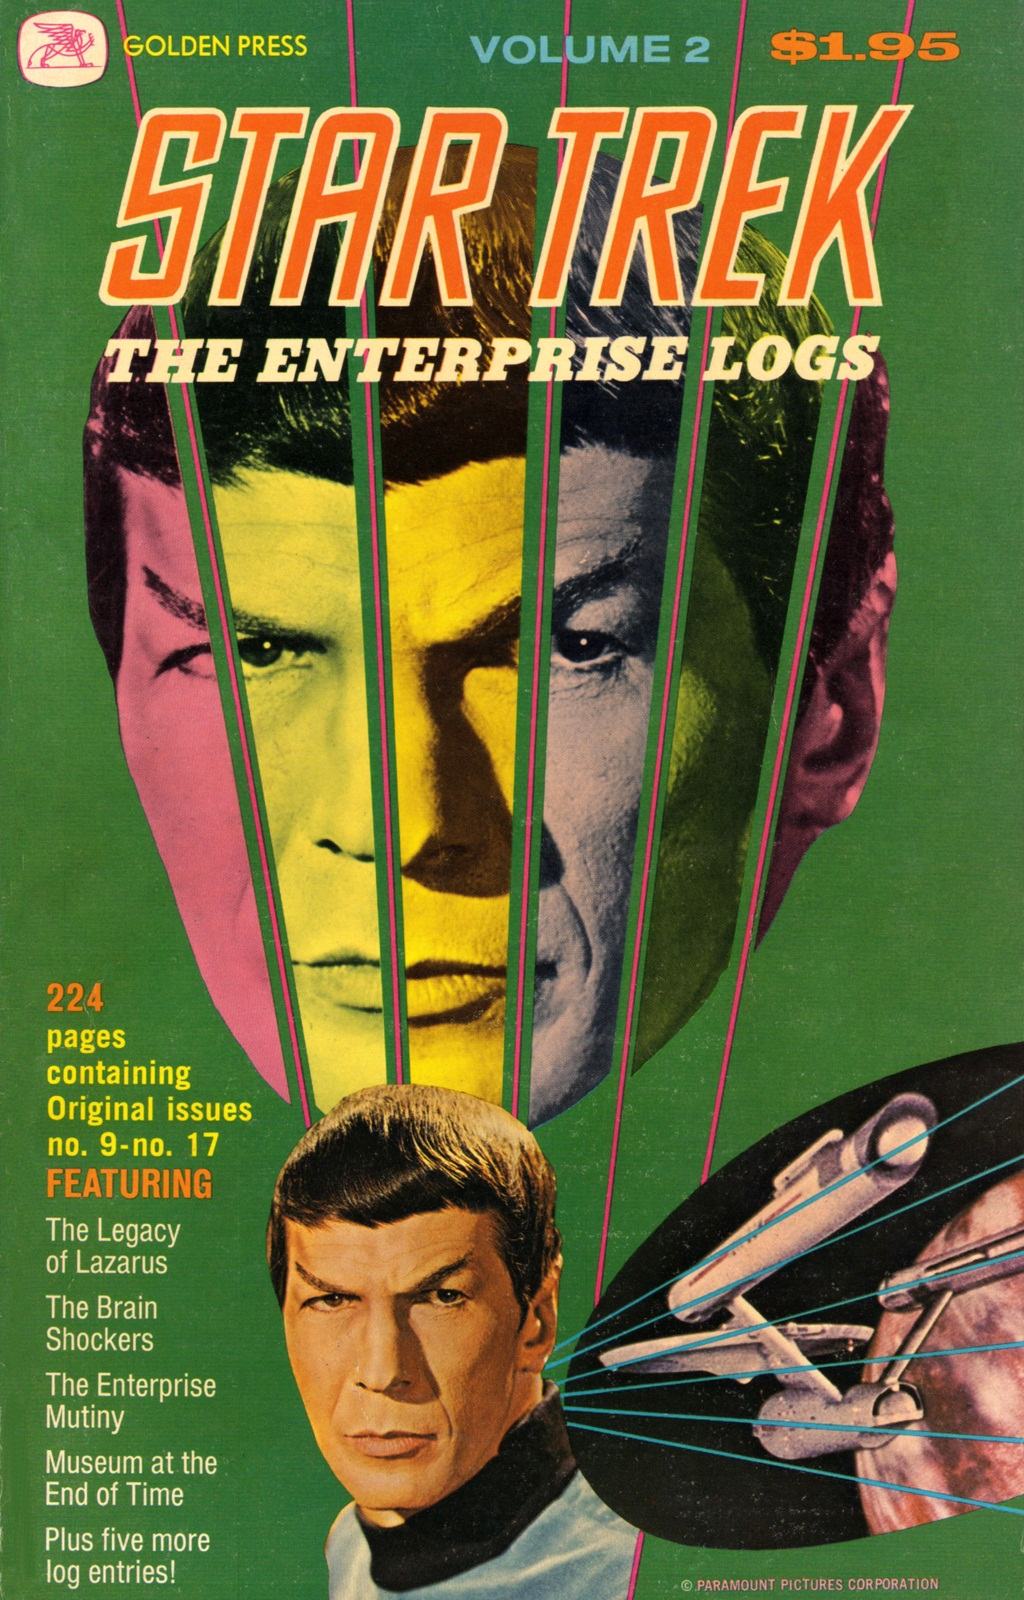 File:Enterprise Logs Volume2.jpg